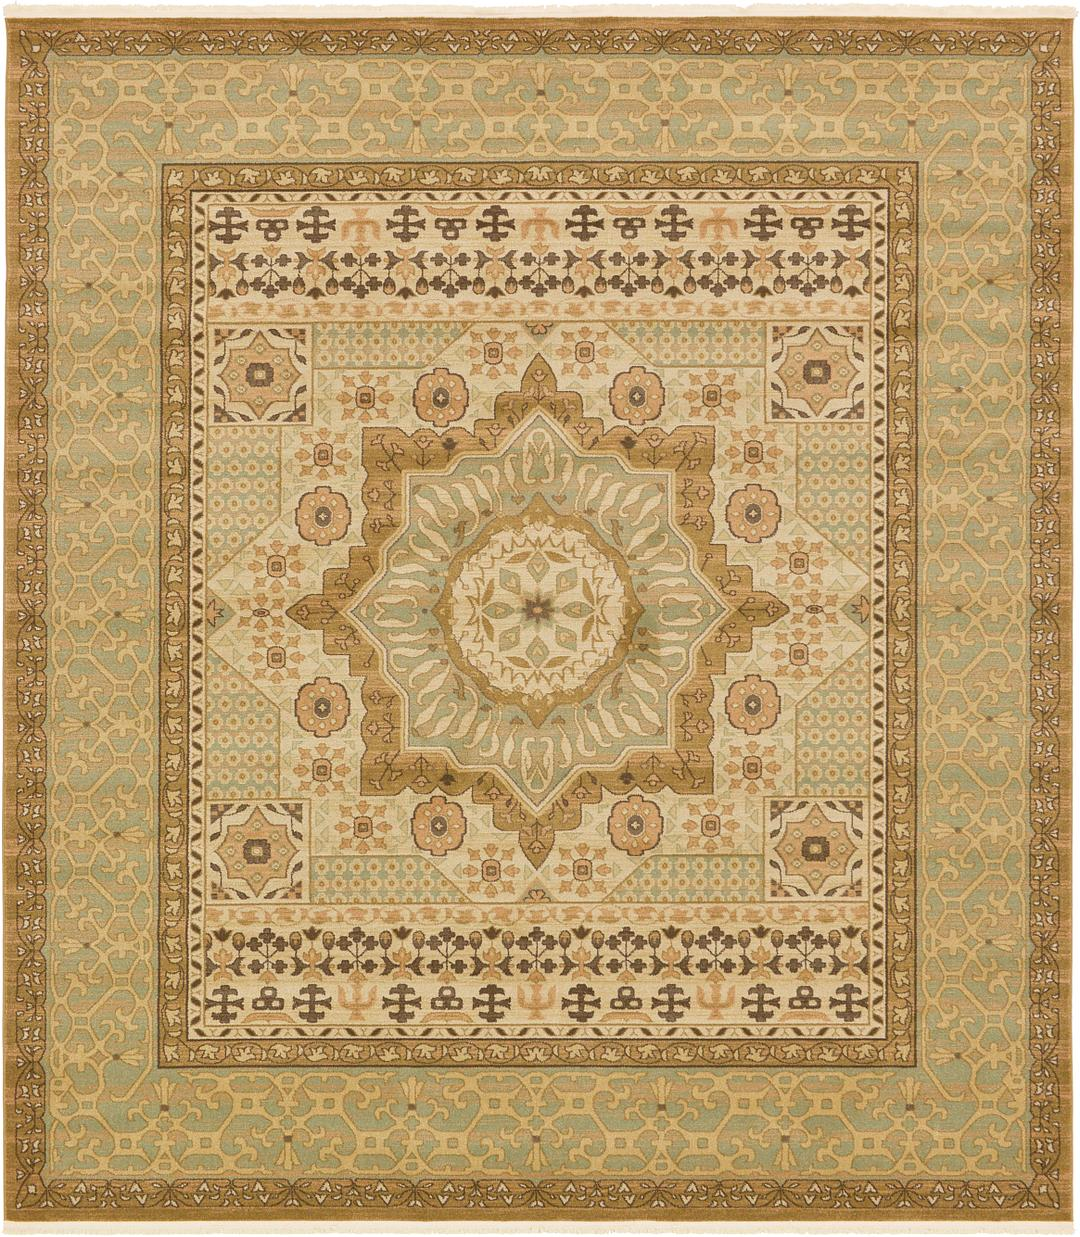 Cream 10 X 11 4 Mamluk Square Rug Area Rugs Irugs Uk